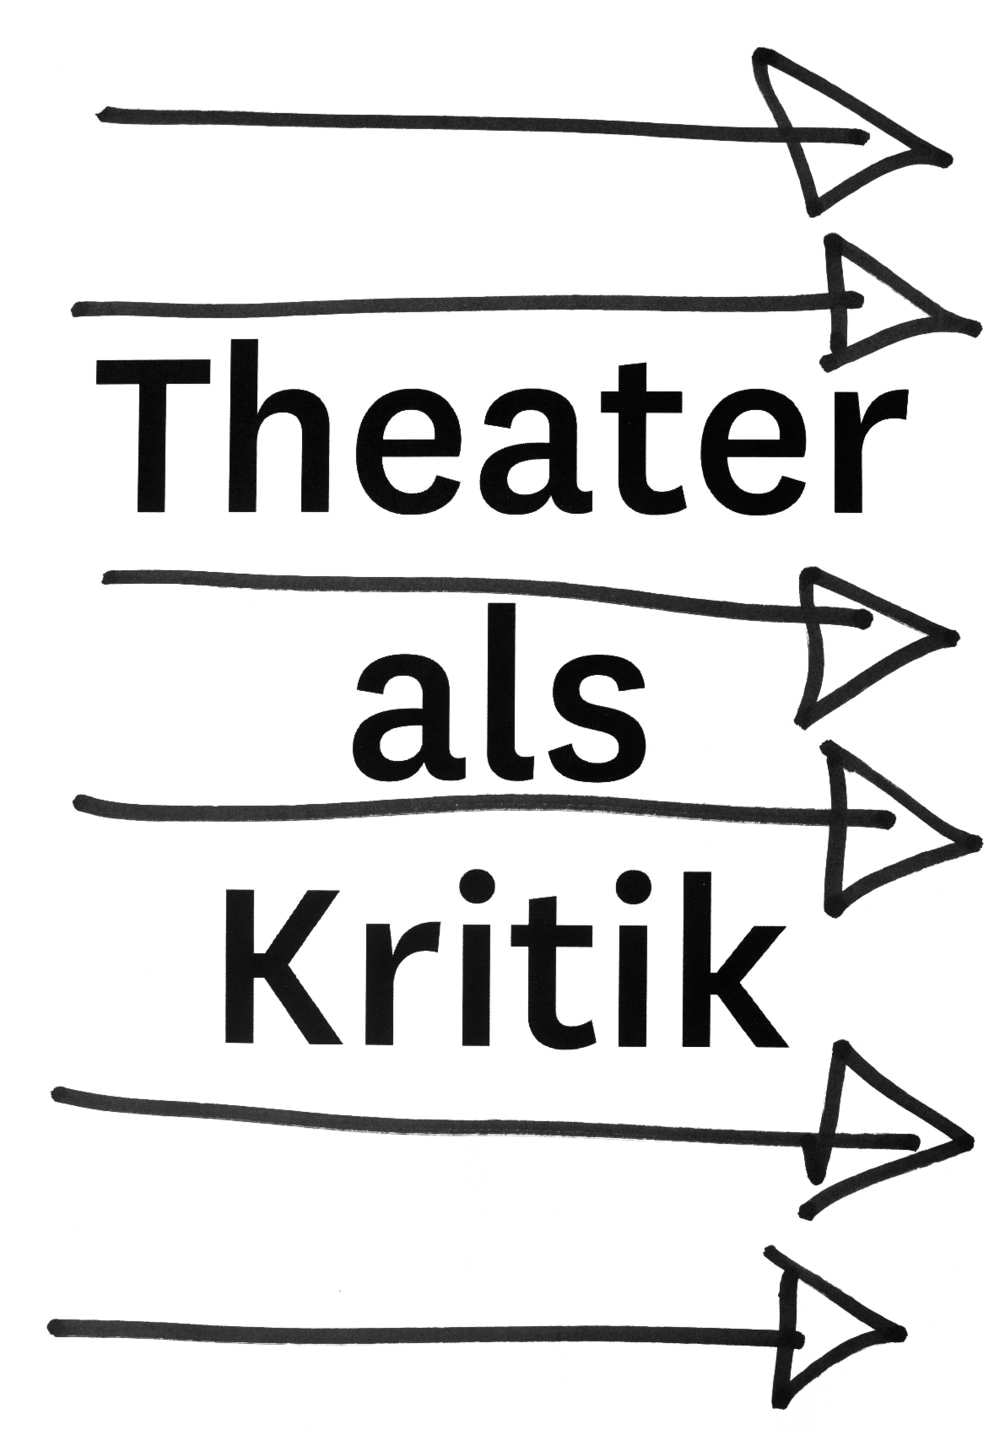 theater-as-critique-slip-05-1005x1435px